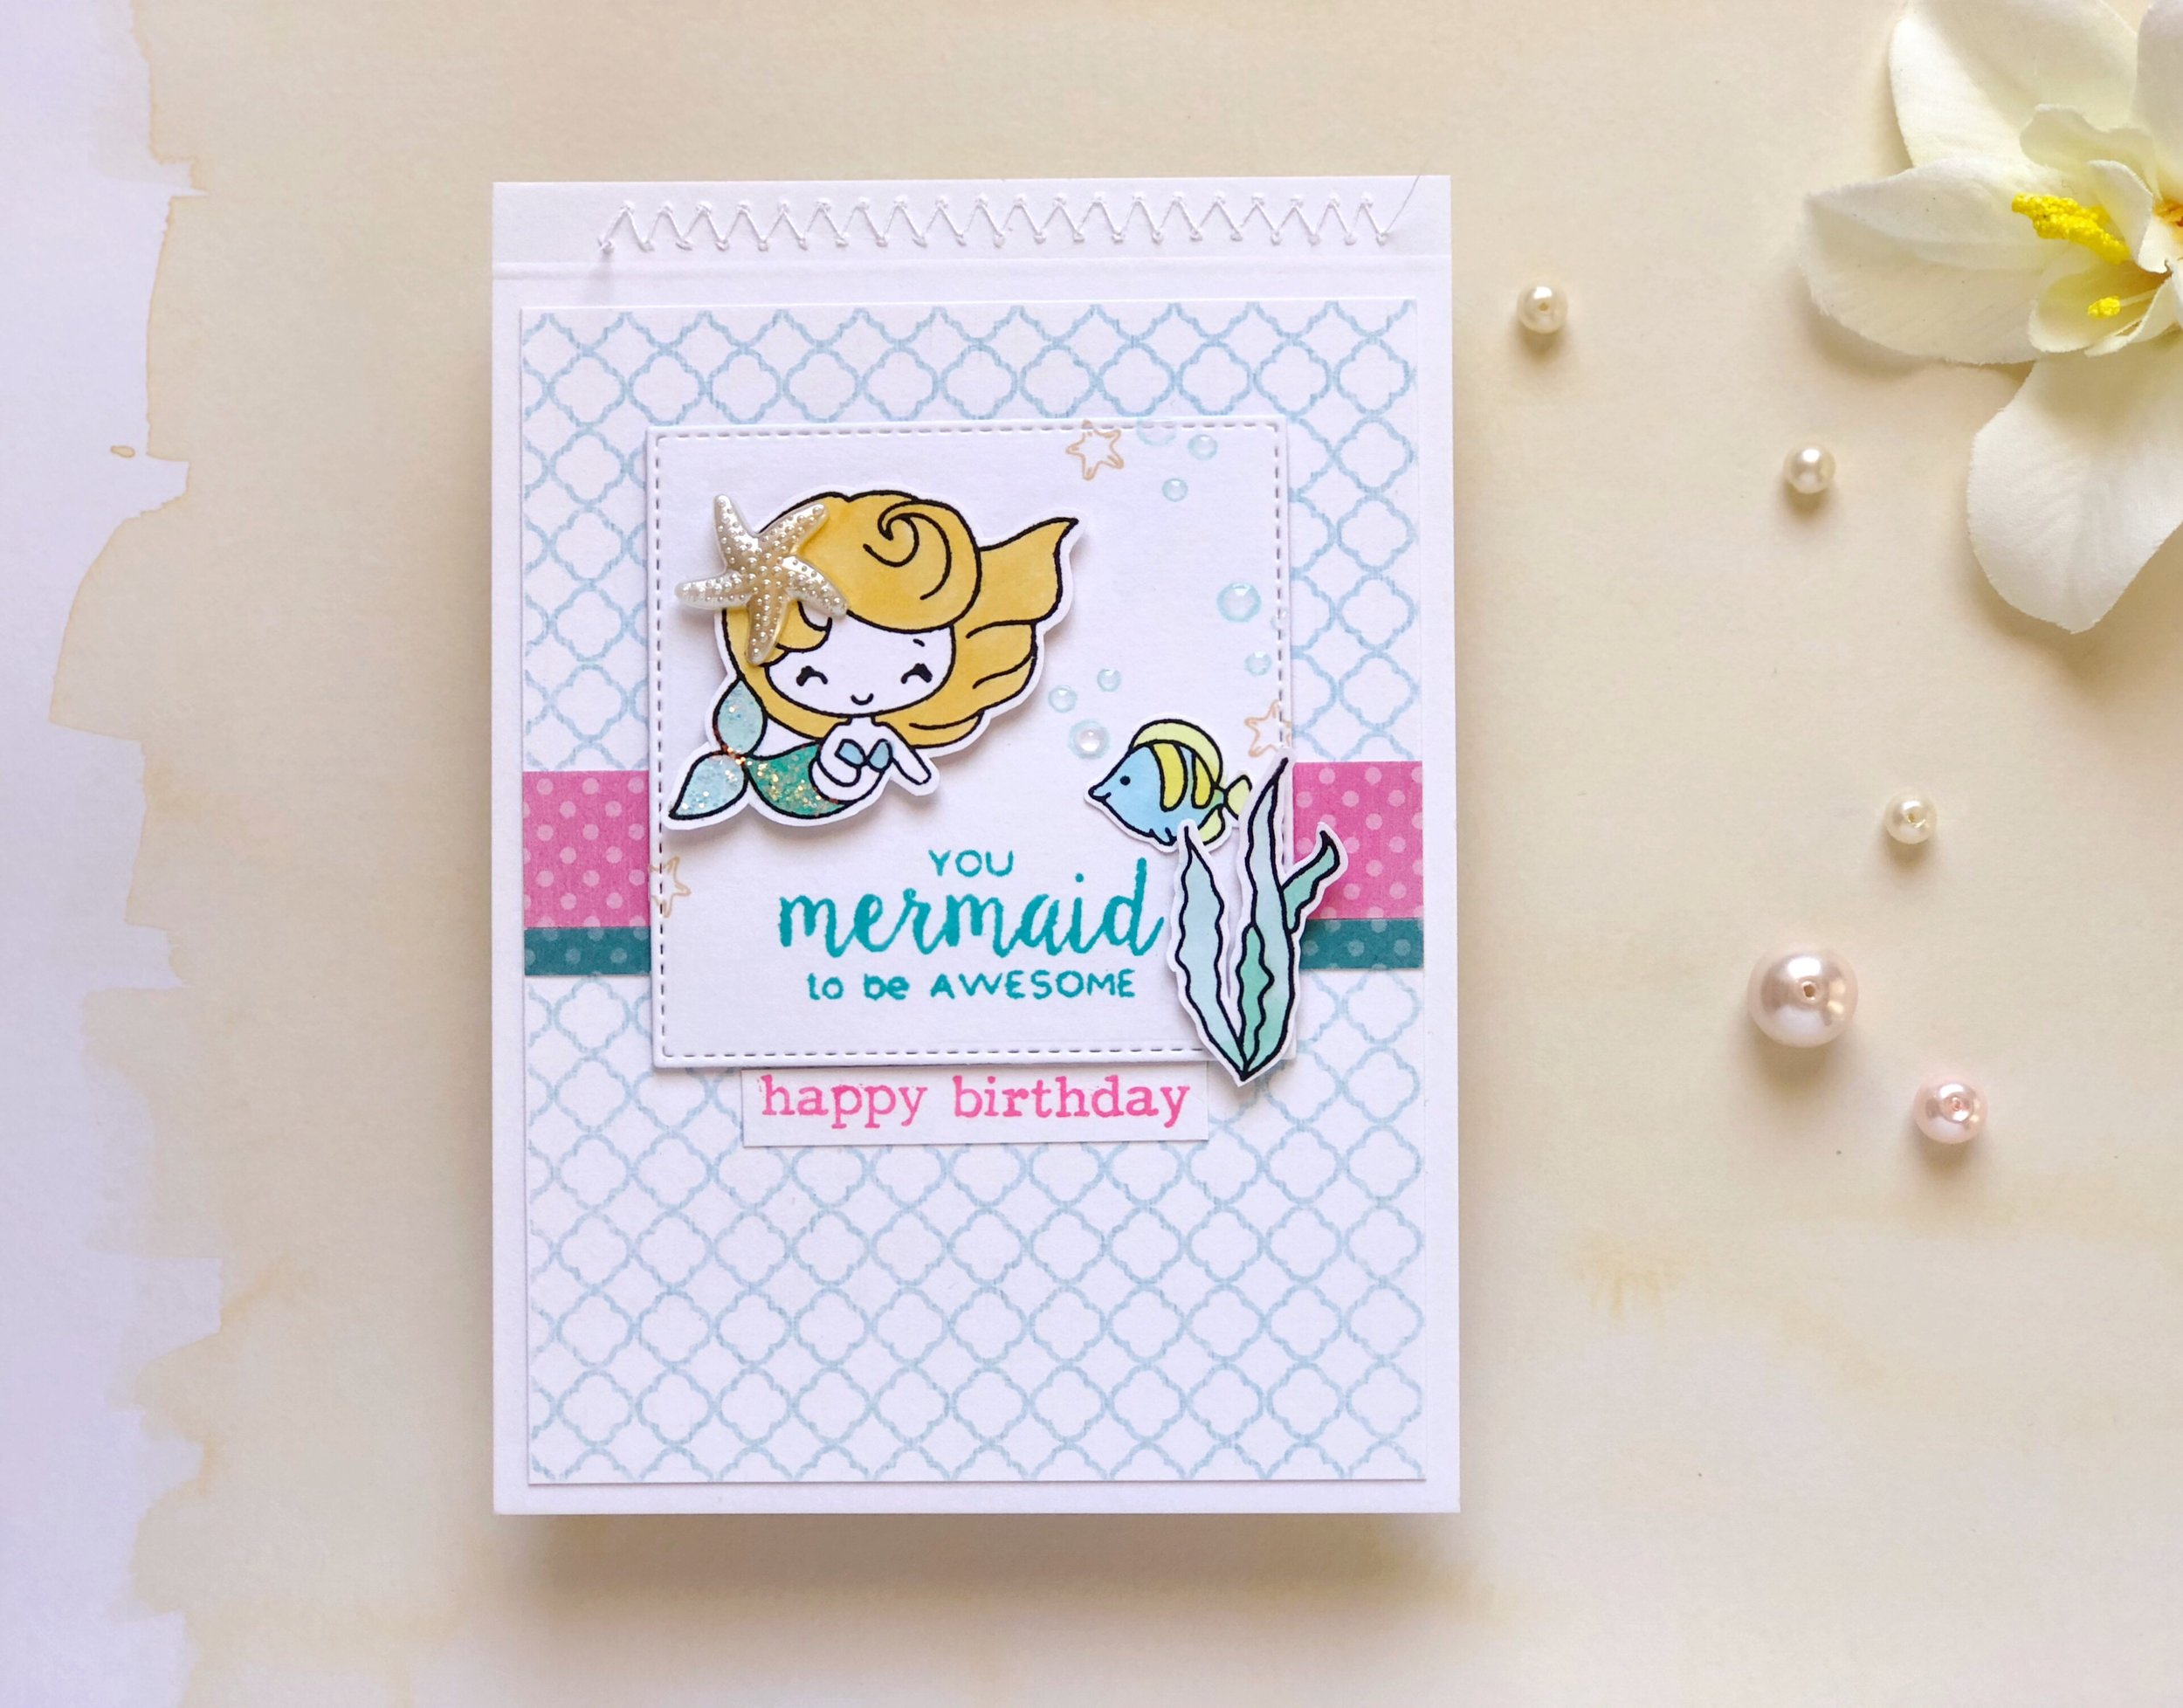 You MERMAID to be awesome—what a cute birthday party invitation. LYFETYMES has an awesome mermaid party theme post up on the blog today.